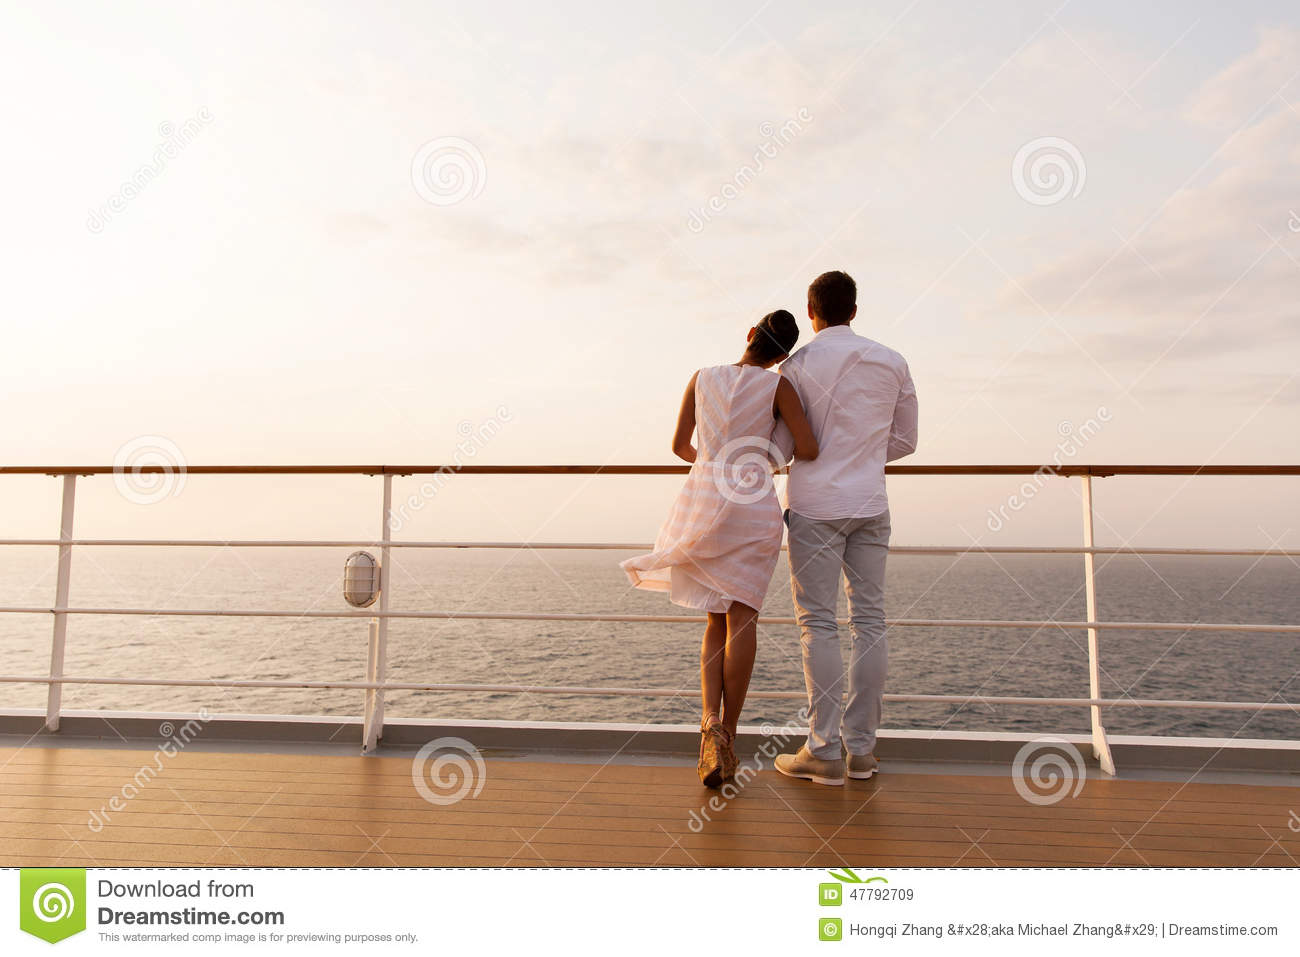 Couple Ship Deck Stock Photo  Image 47792709